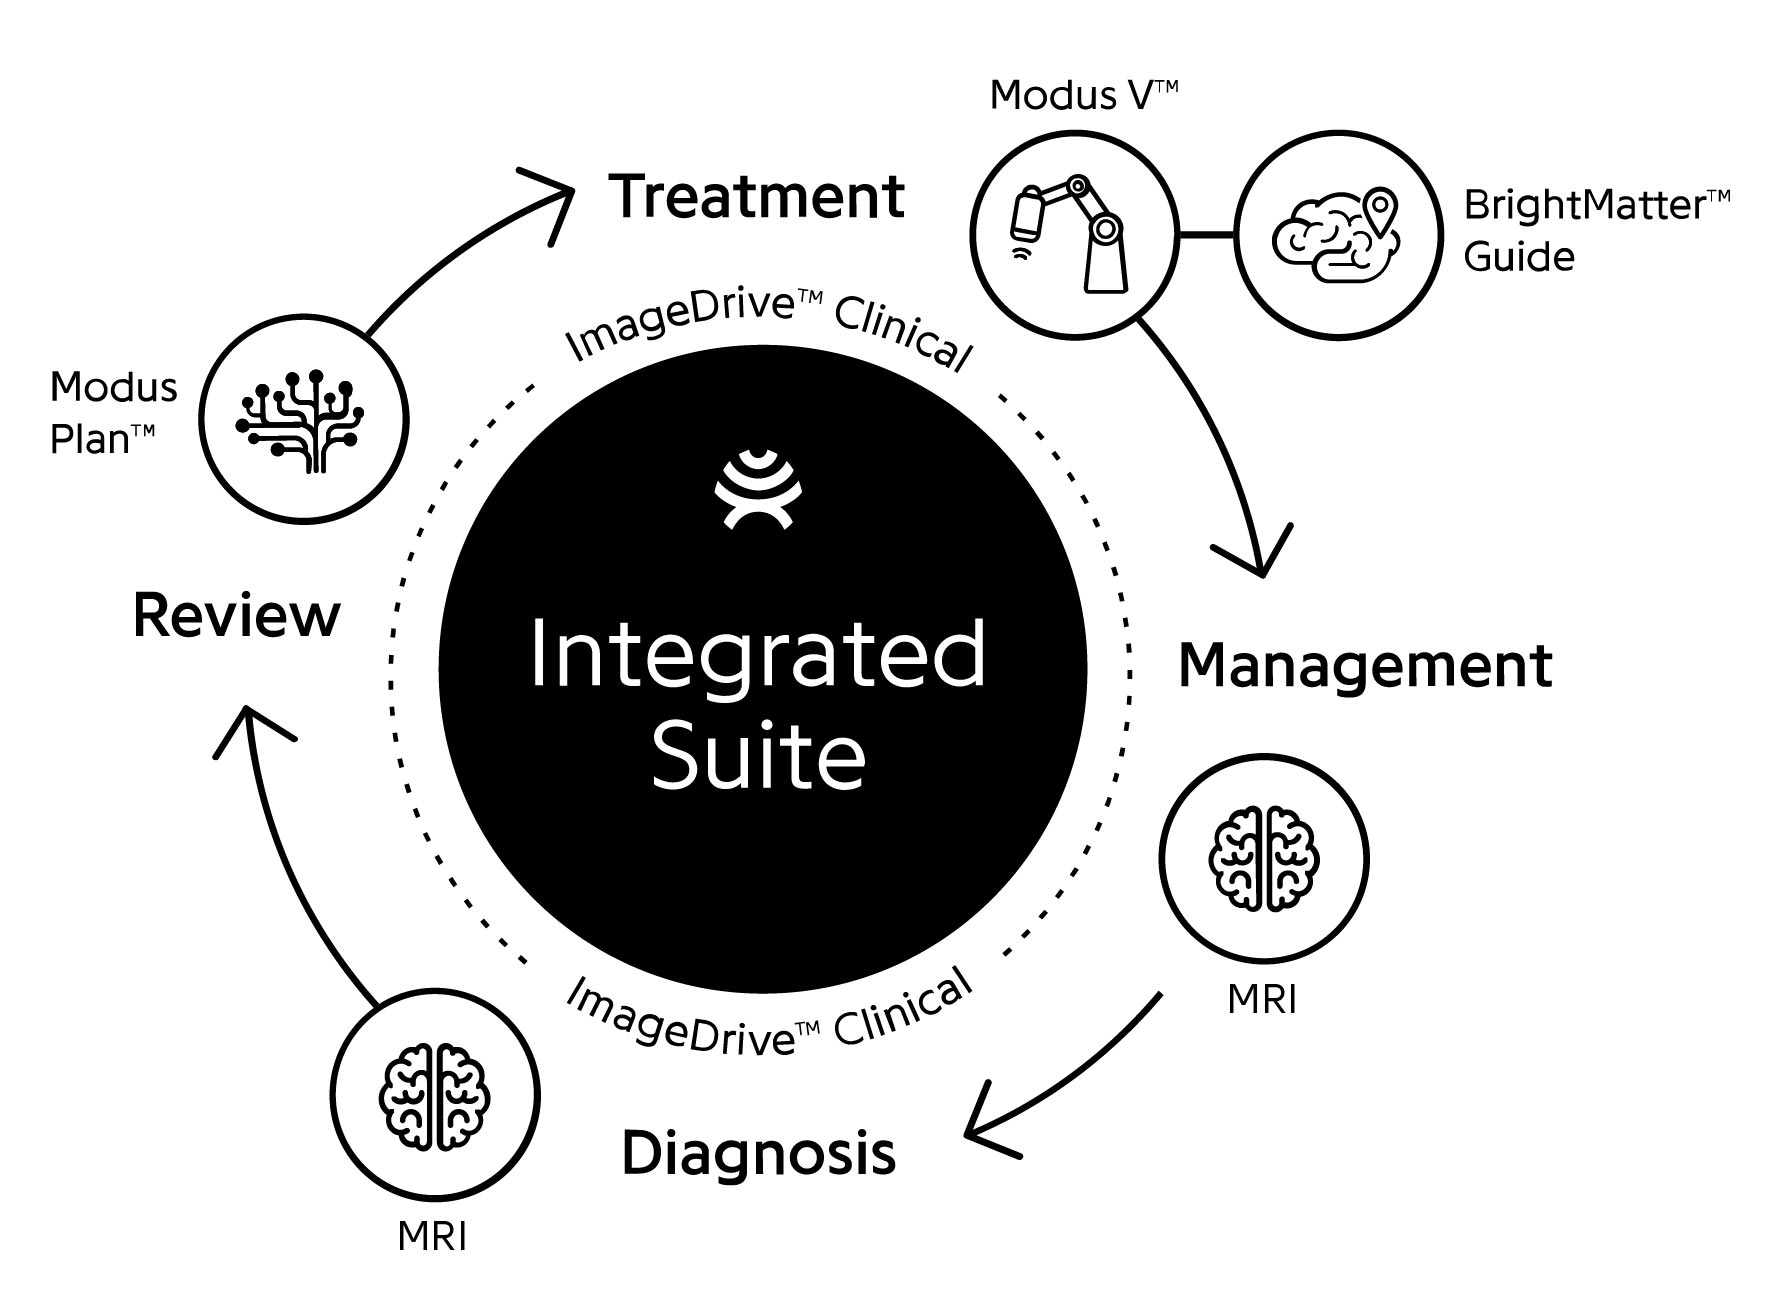 diagram of integrated products in circle